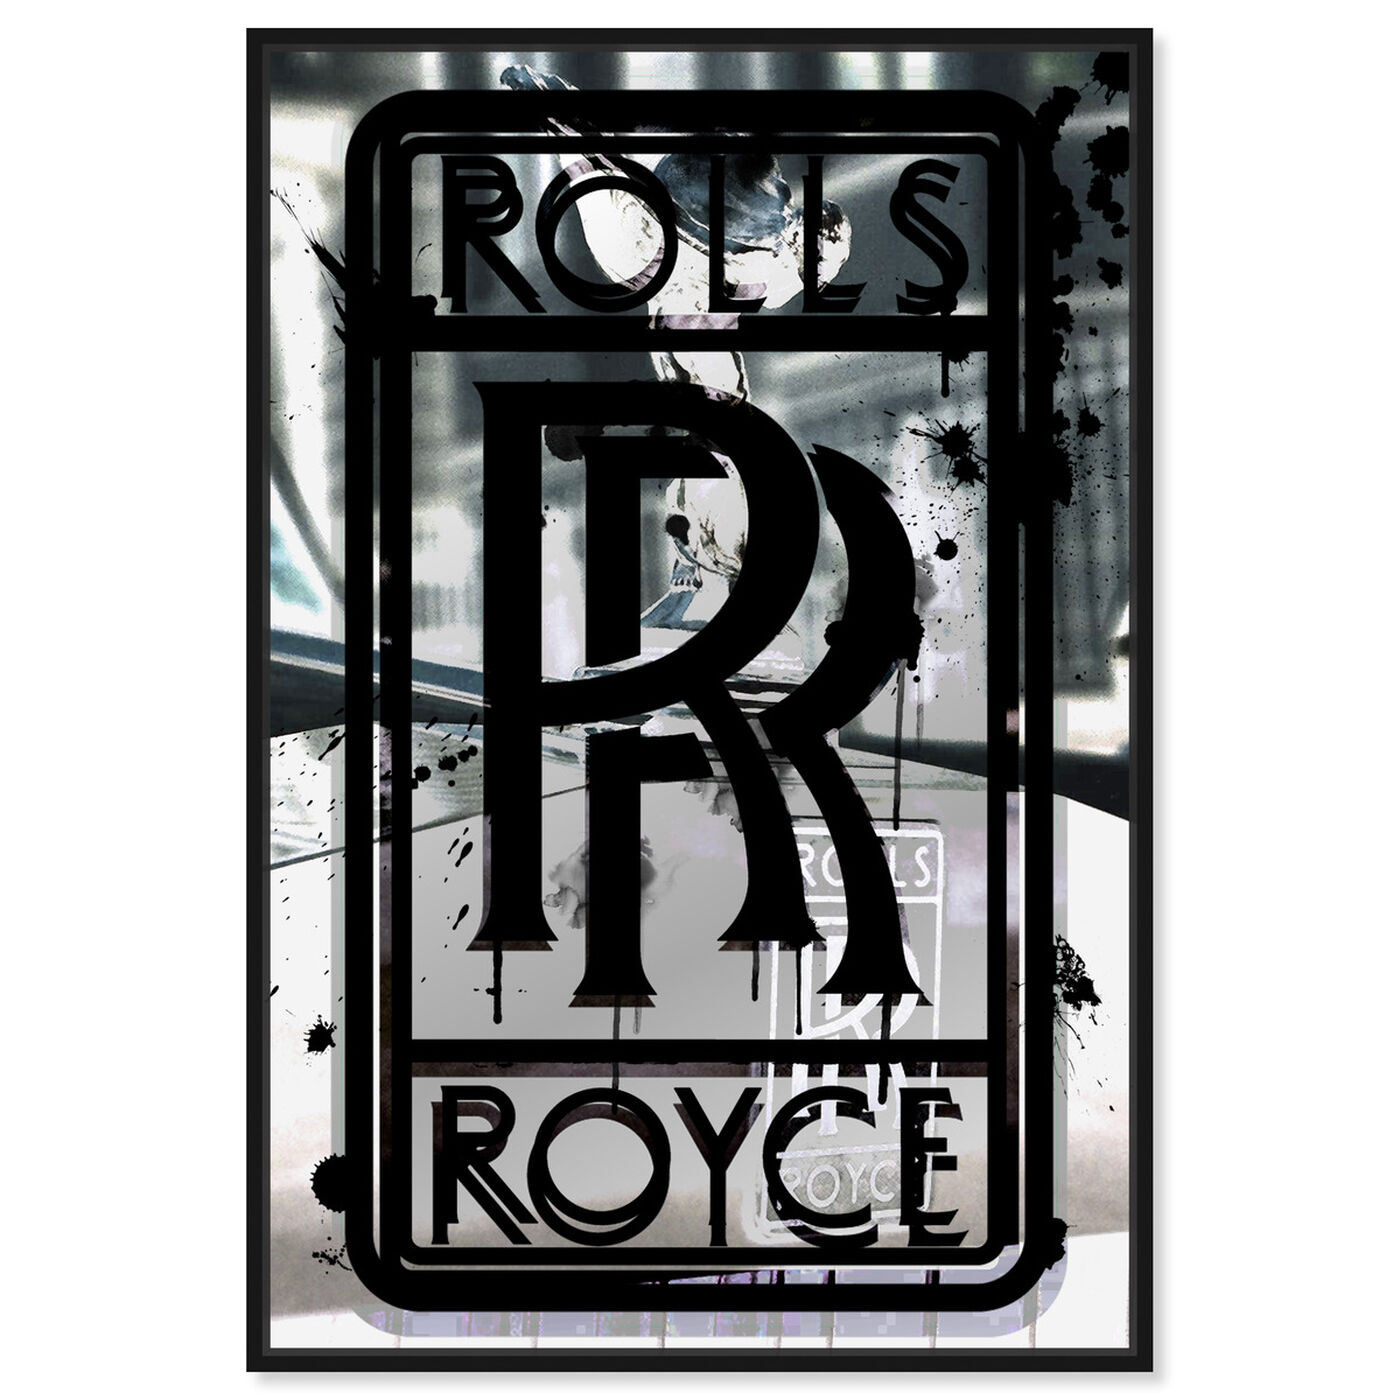 Front view of Roll Up Like Whoa featuring transportation and automobiles art.